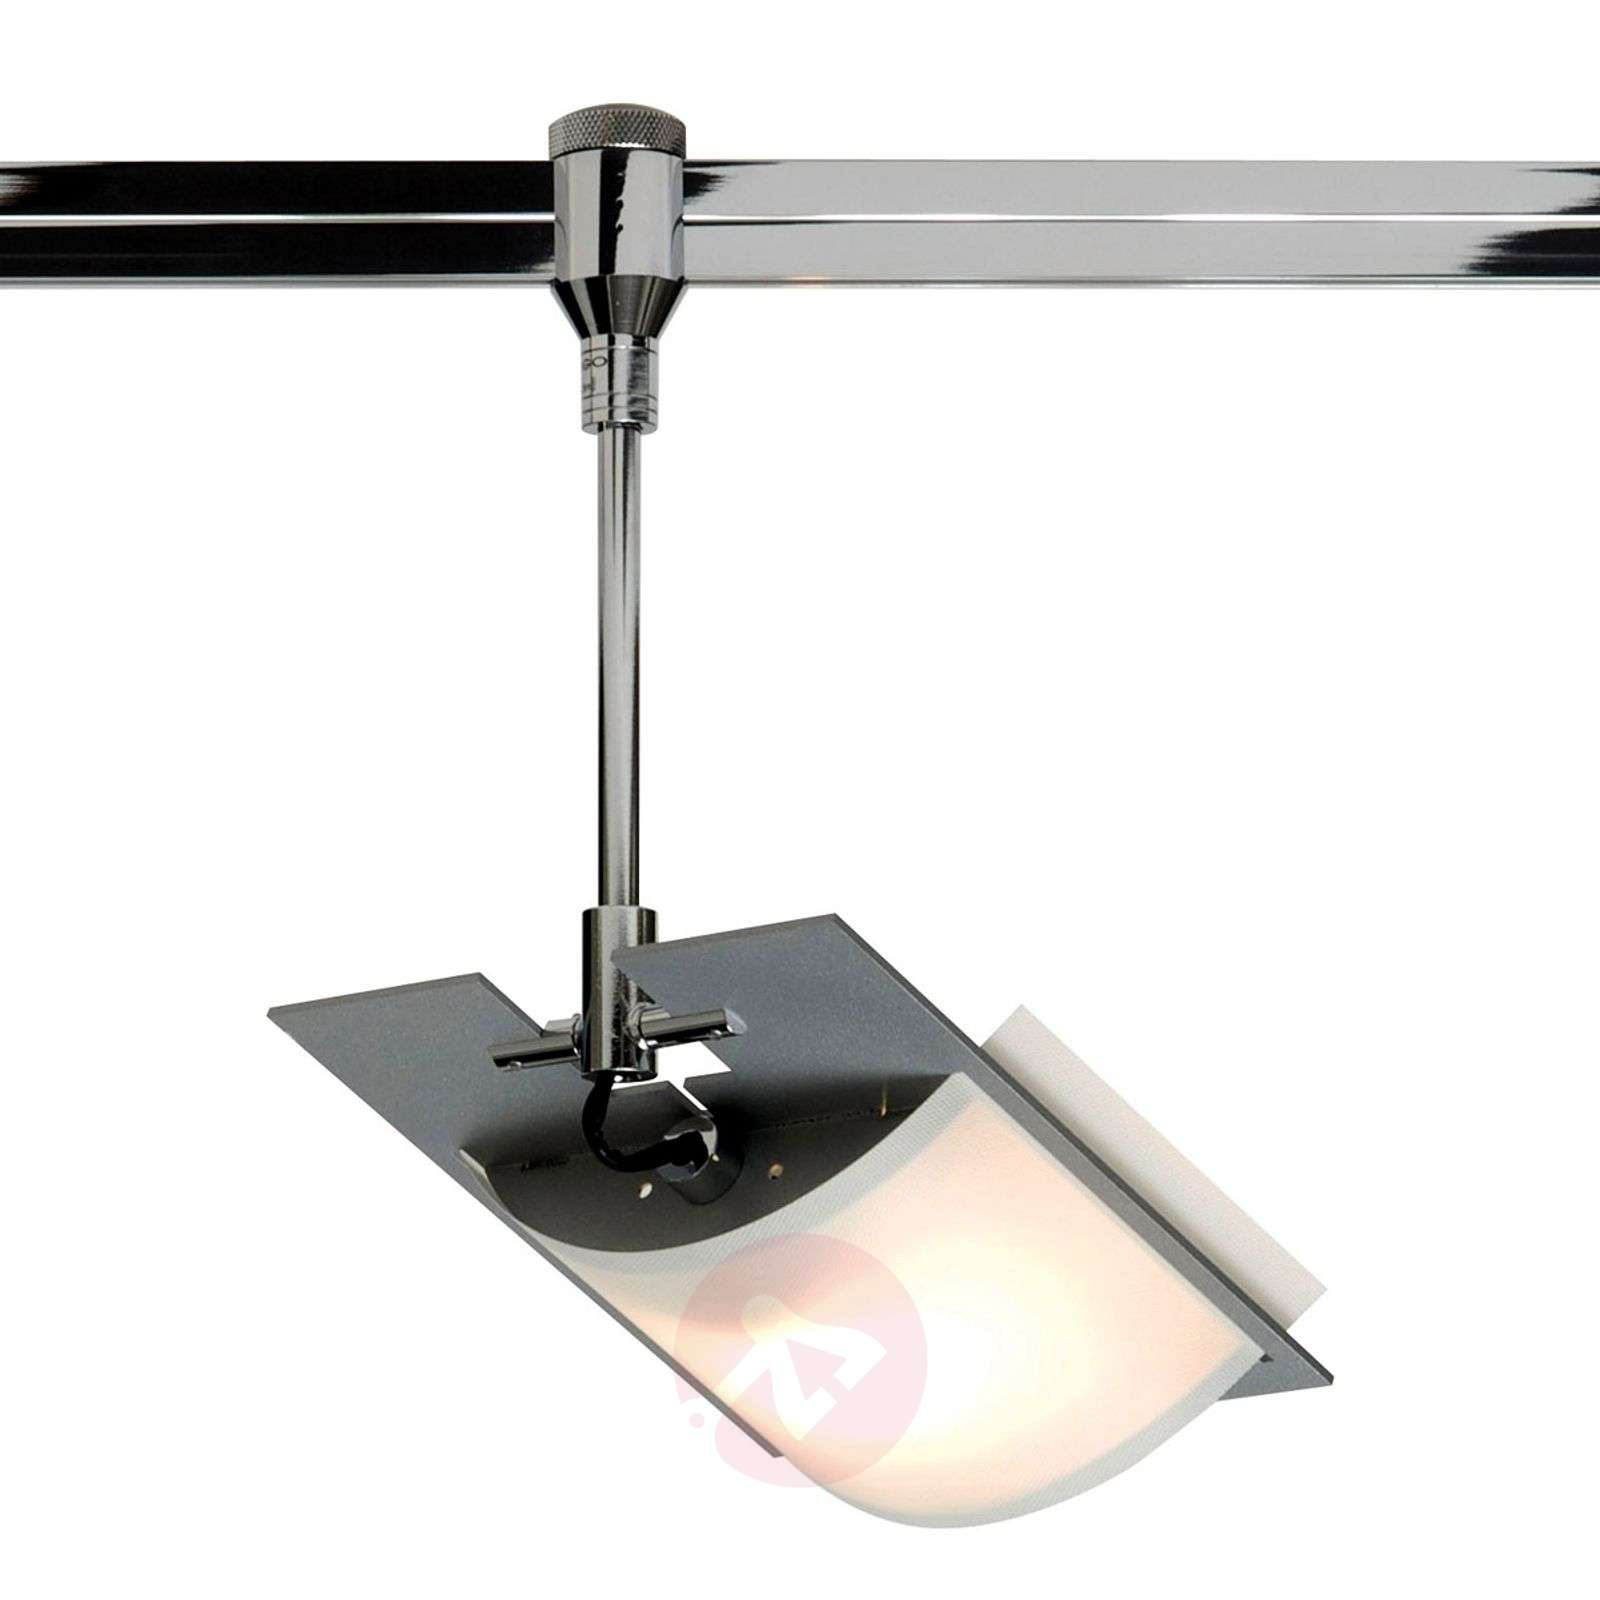 Lamp HIGH FLIGH voor CHECK-IN 1-fasesysteem 14-7250227-01